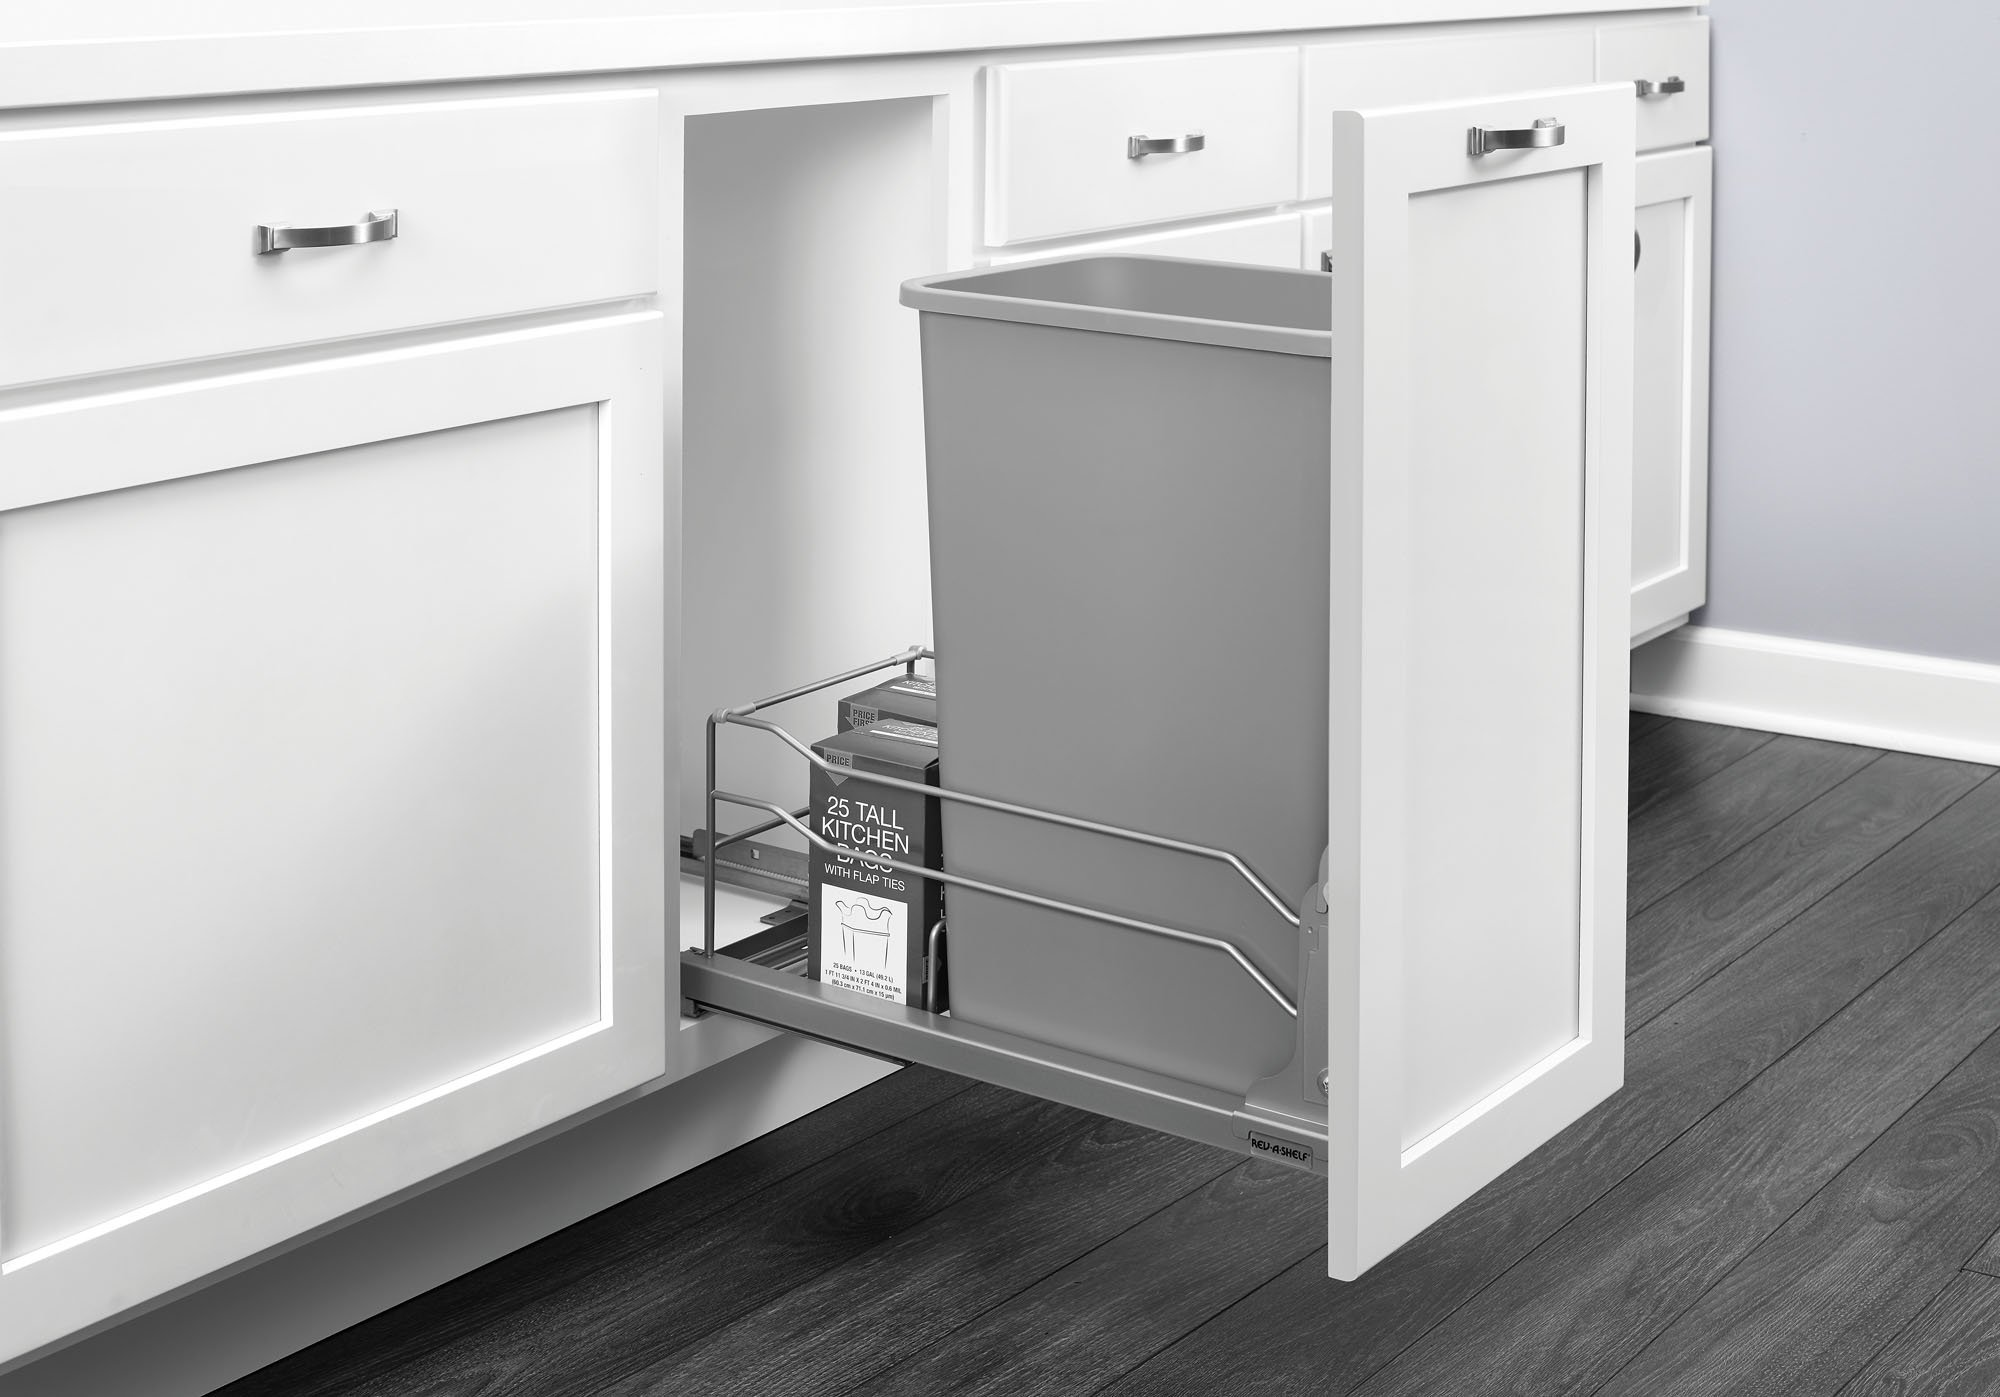 Rev-A-Shelf - 53WC-1550SCDM-117 - Single 50 Qt. Pull-Out Silver Waste Container with Soft-Close Slides by Rev-A-Shelf